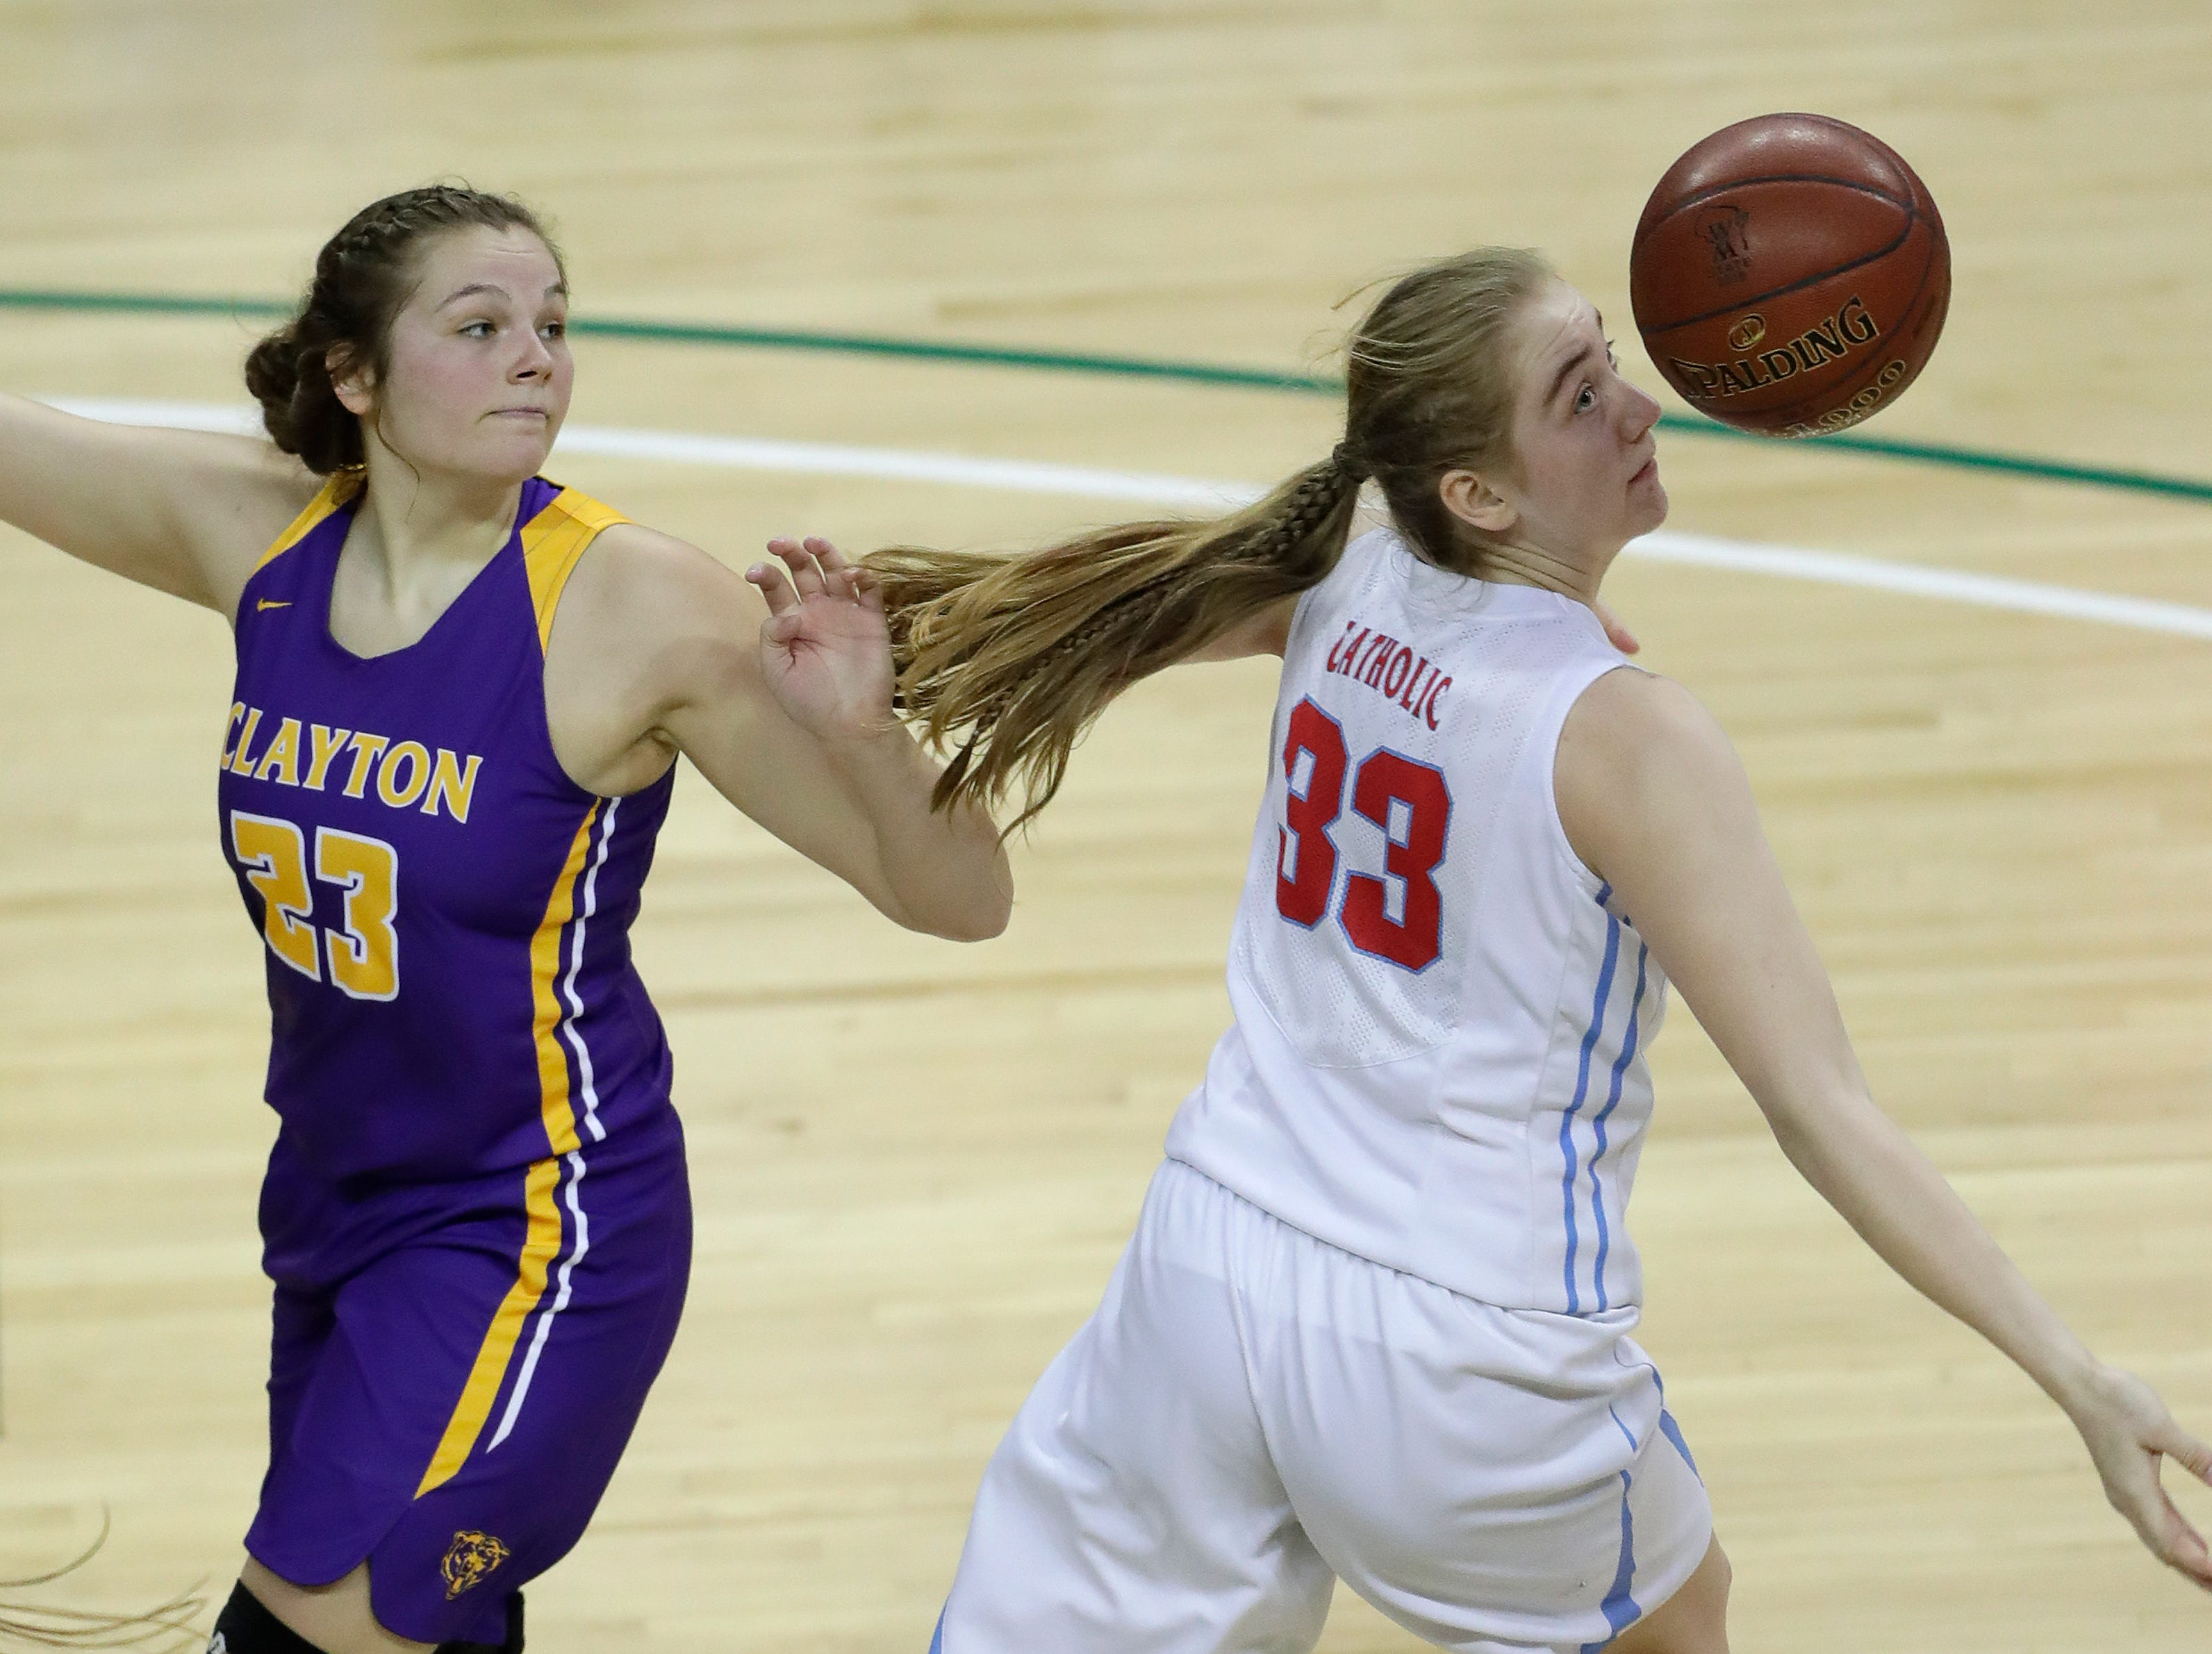 Clayton's Alison Leslie (23) defends against Wausau Newman Catholic's Jadelyn Ganski (33) during their Division 5 semifinal game at the WIAA girls state basketball tournament Friday, March 8, 2019, at the Resch Center in Ashwaubenon, Wis. Dan Powers/USA TODAY NETWORK-Wisconsin